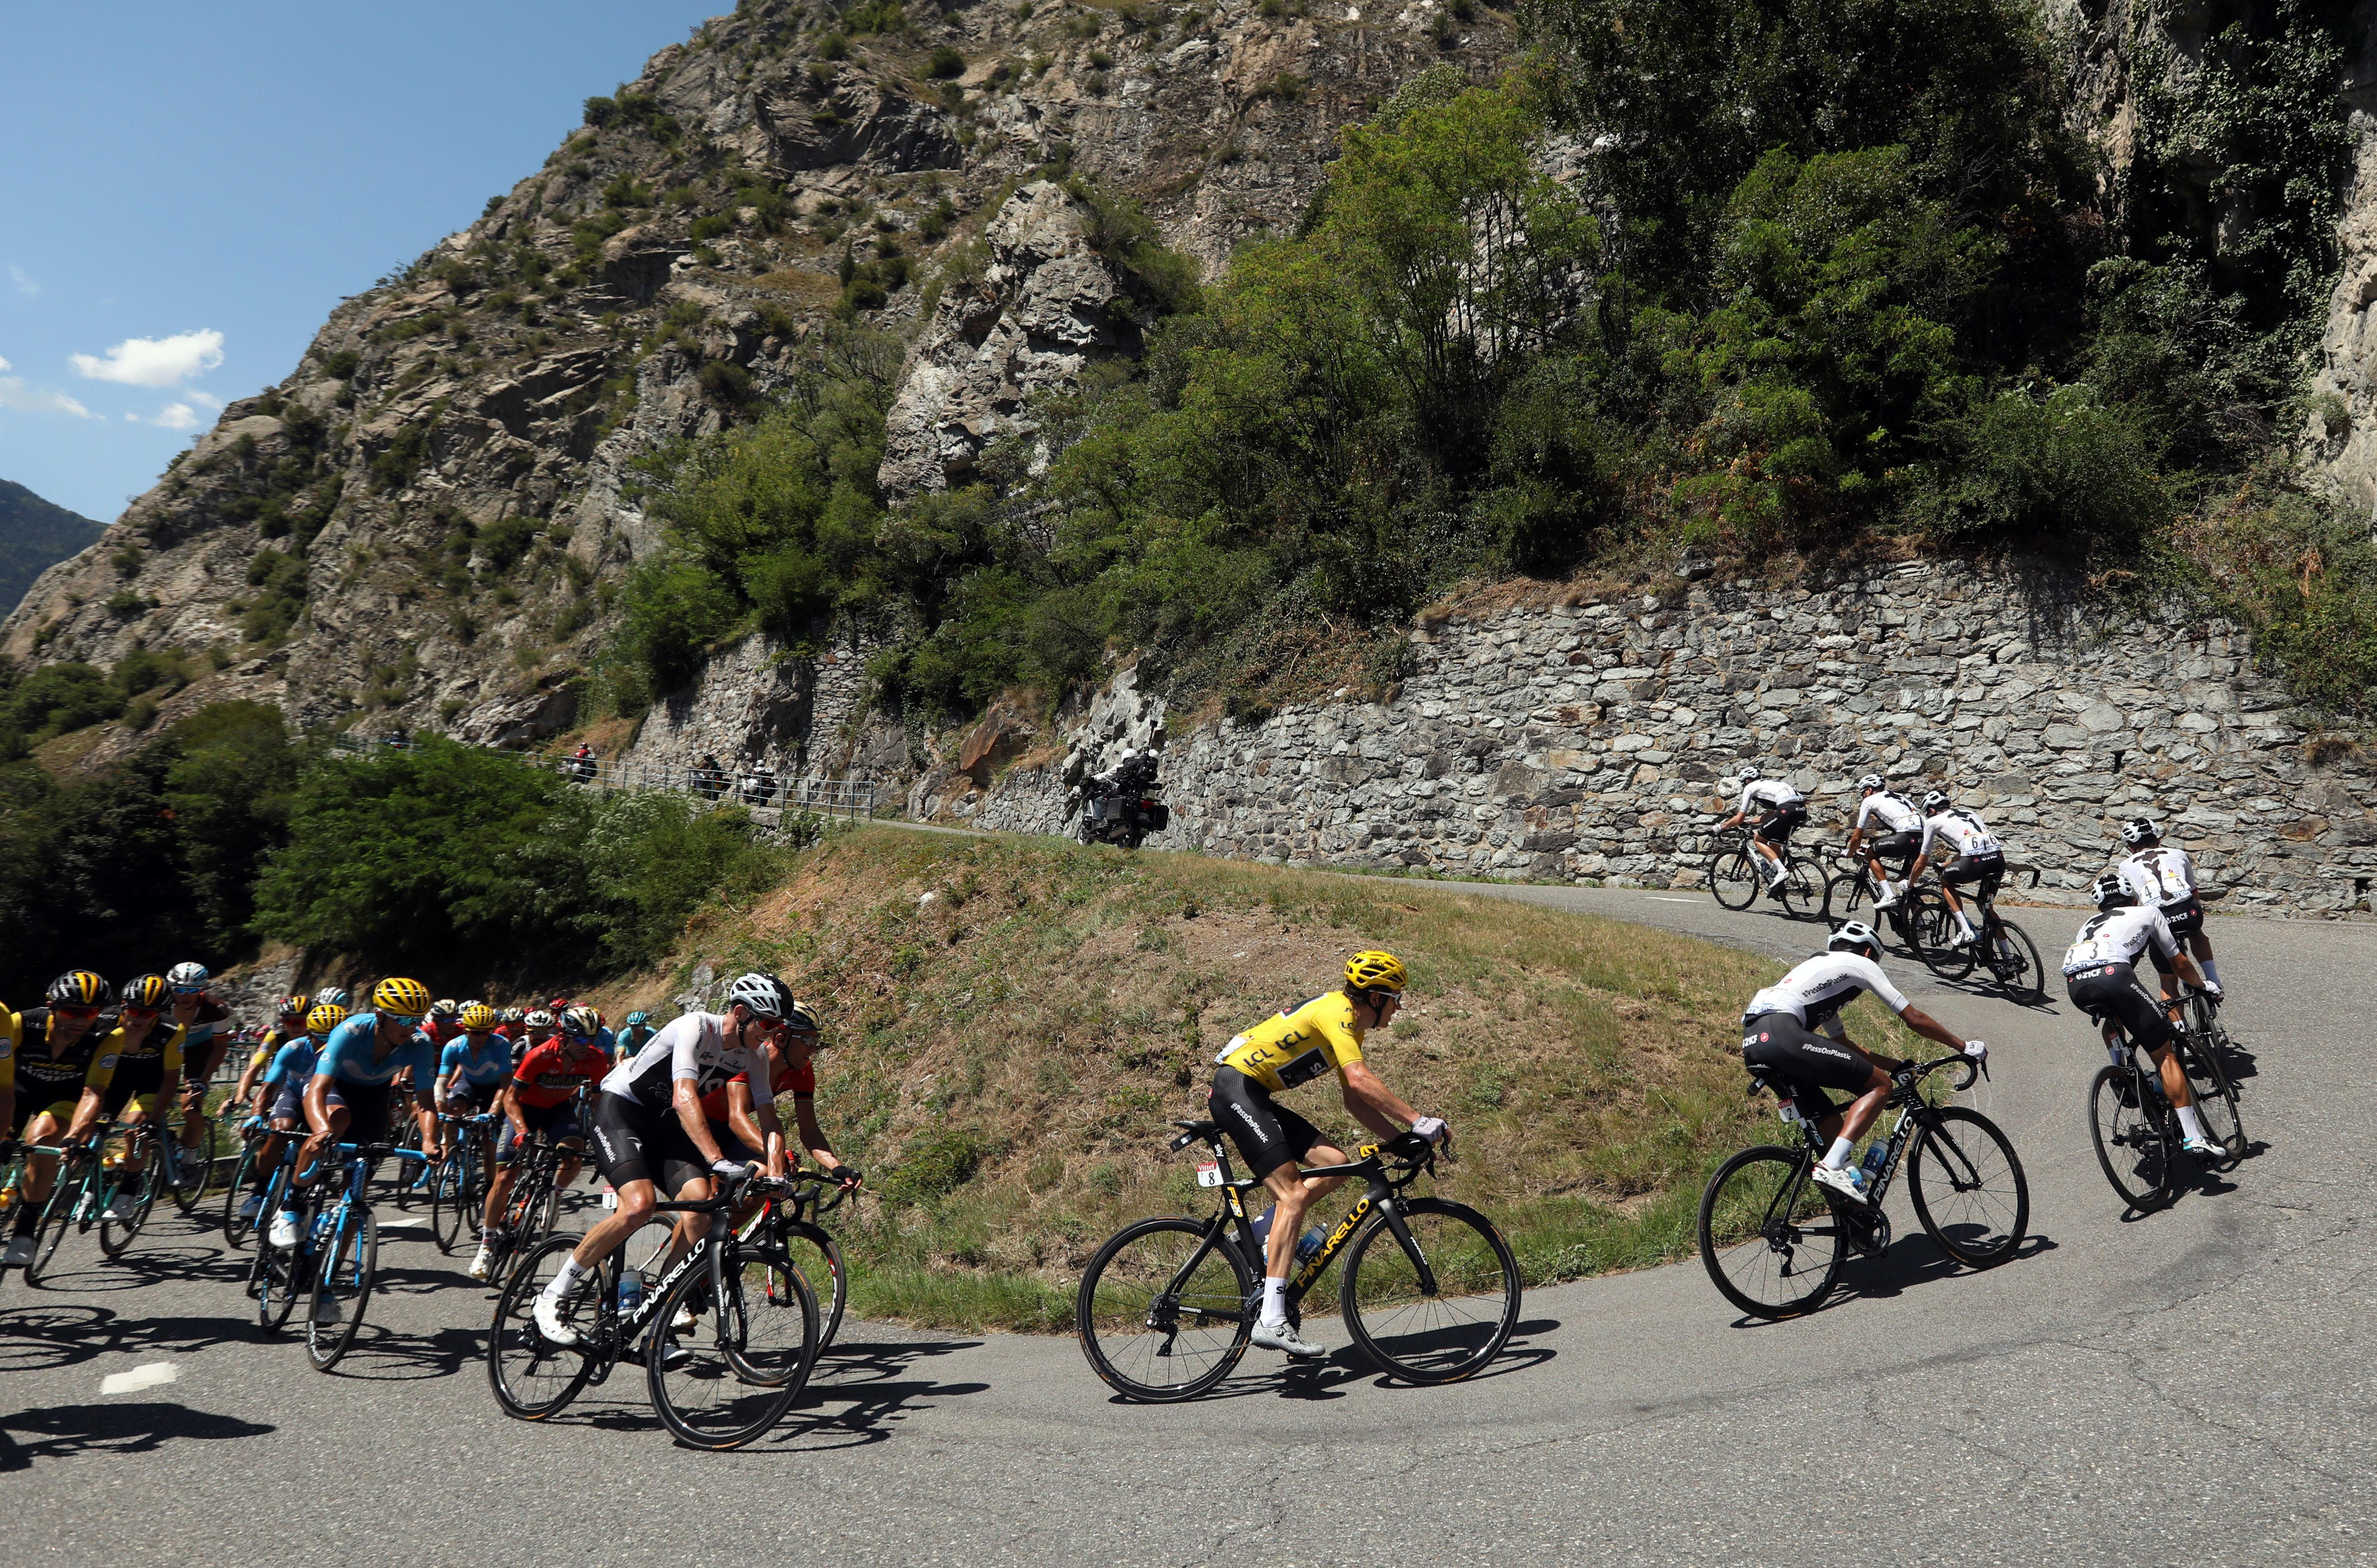 Thomas increased his gap over Froome on general classification to 1min 39sec